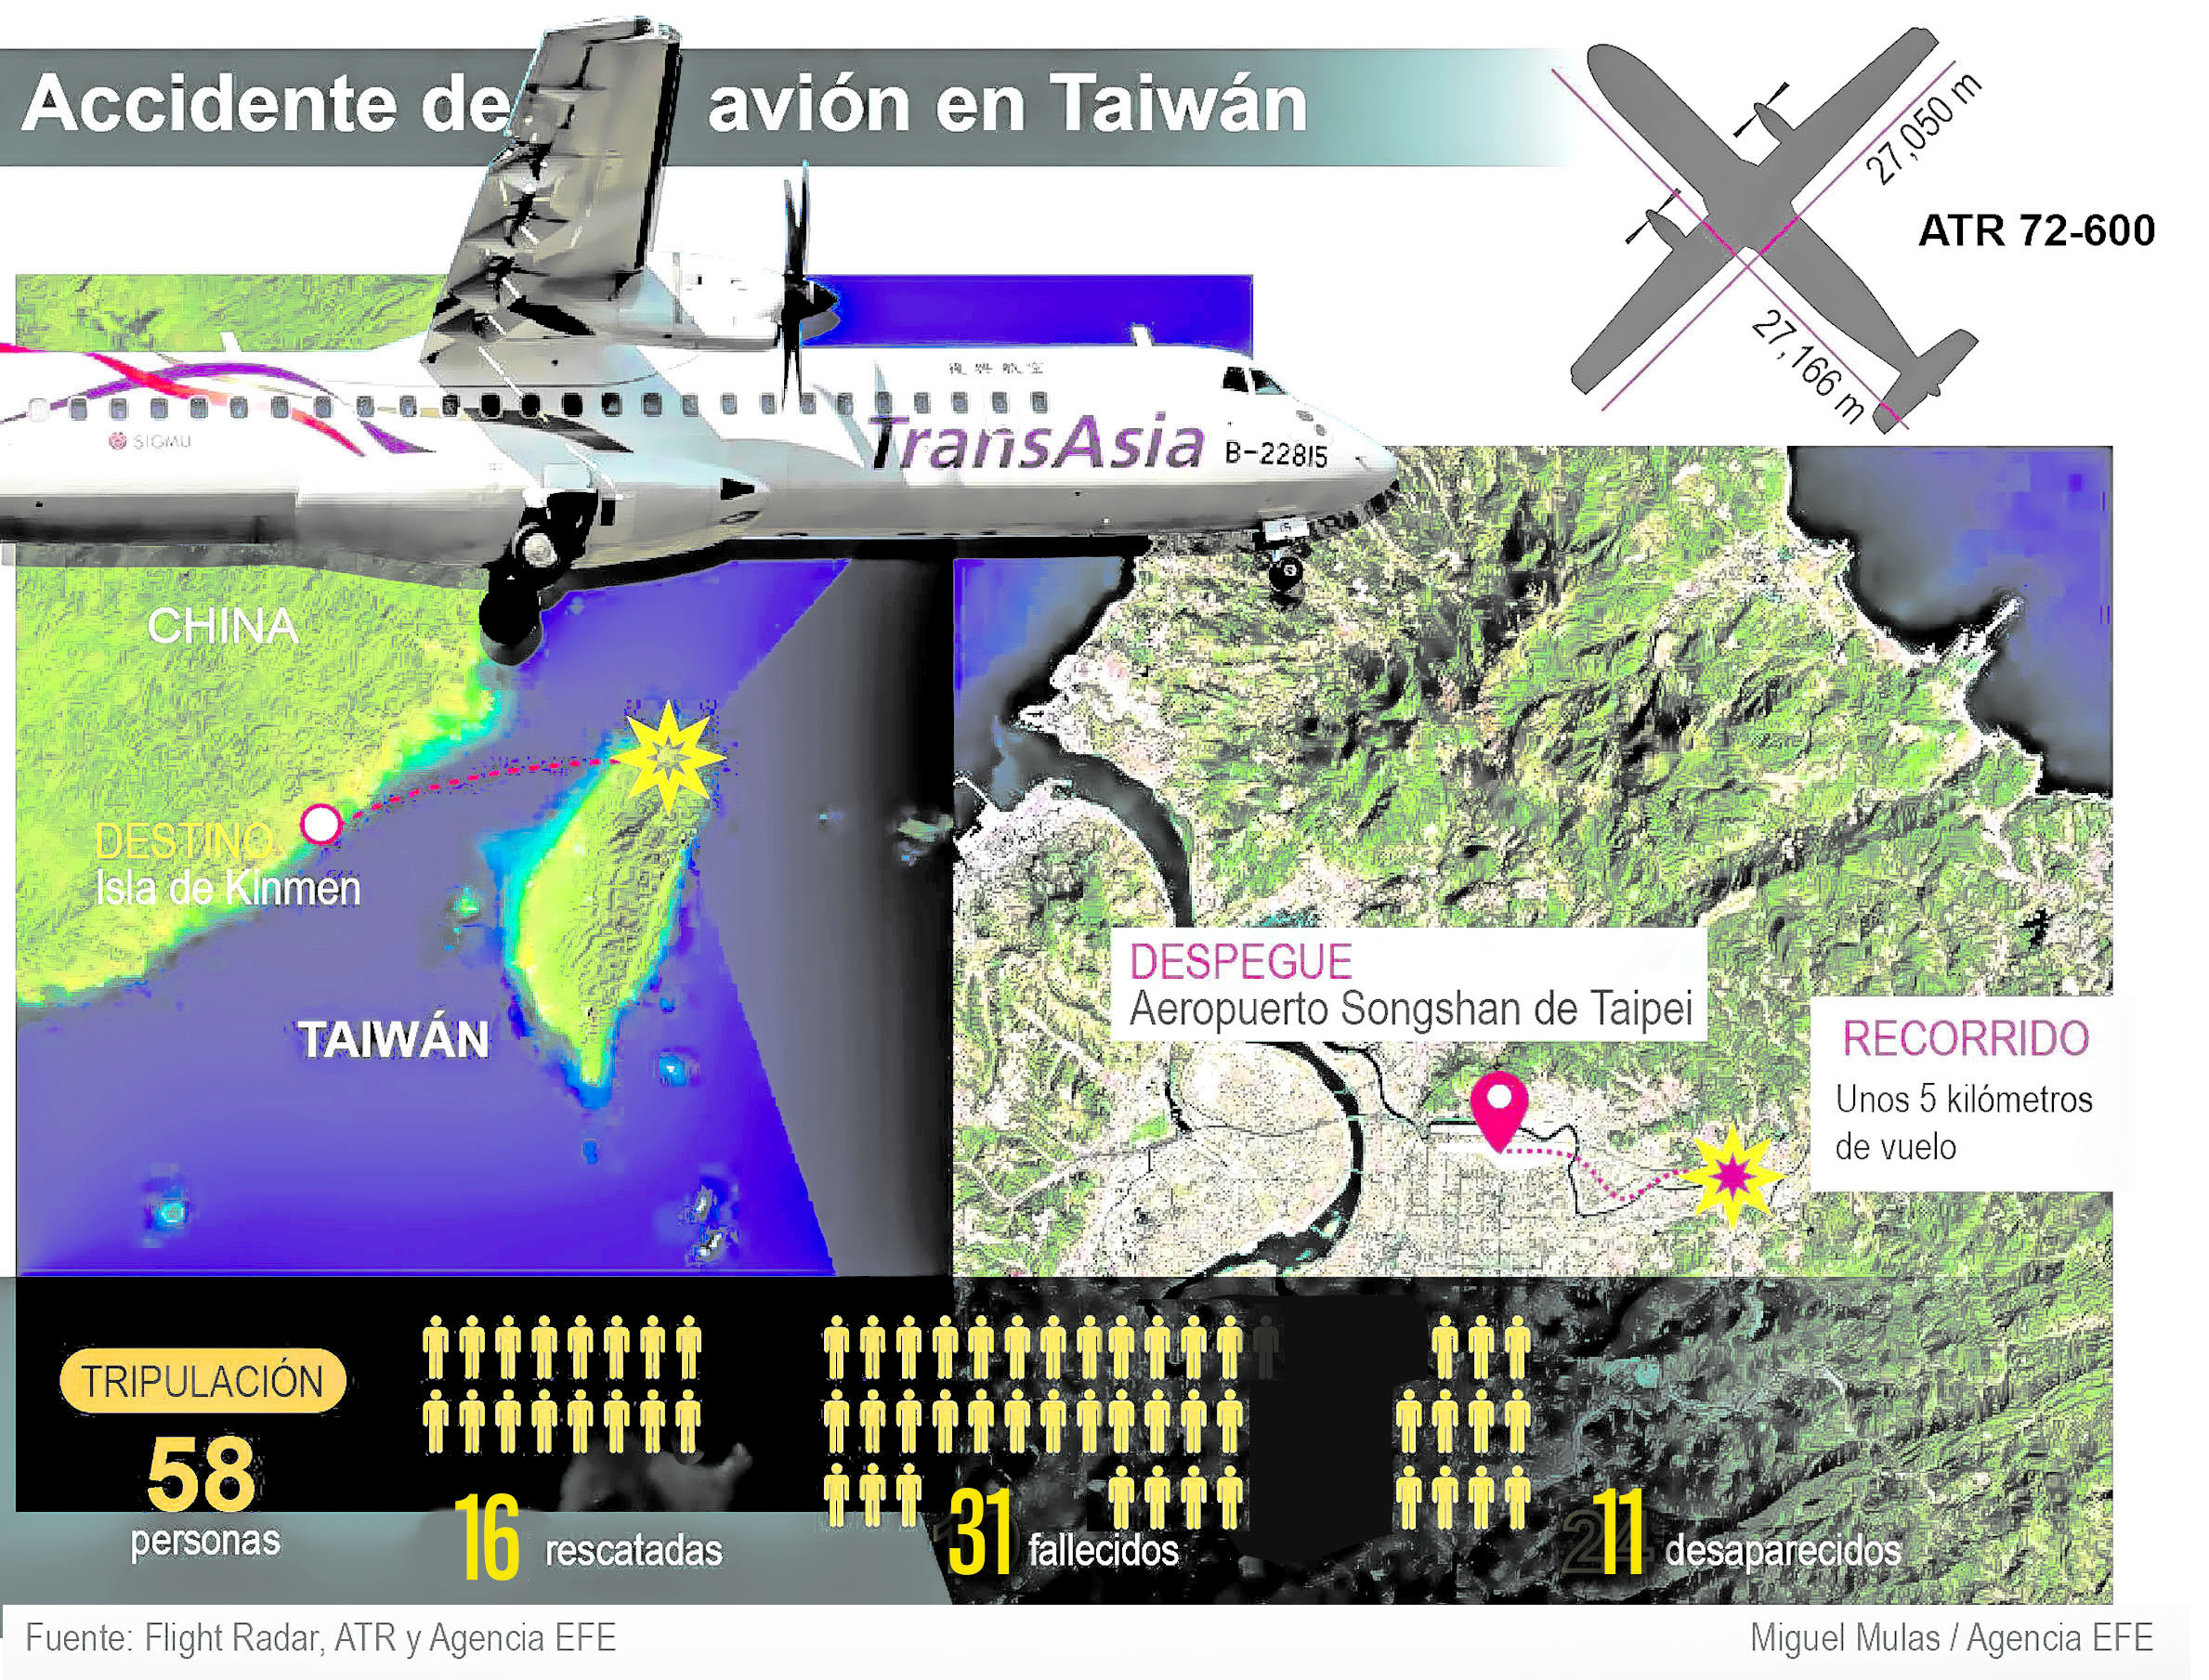 Accidente de avión en Taiwán